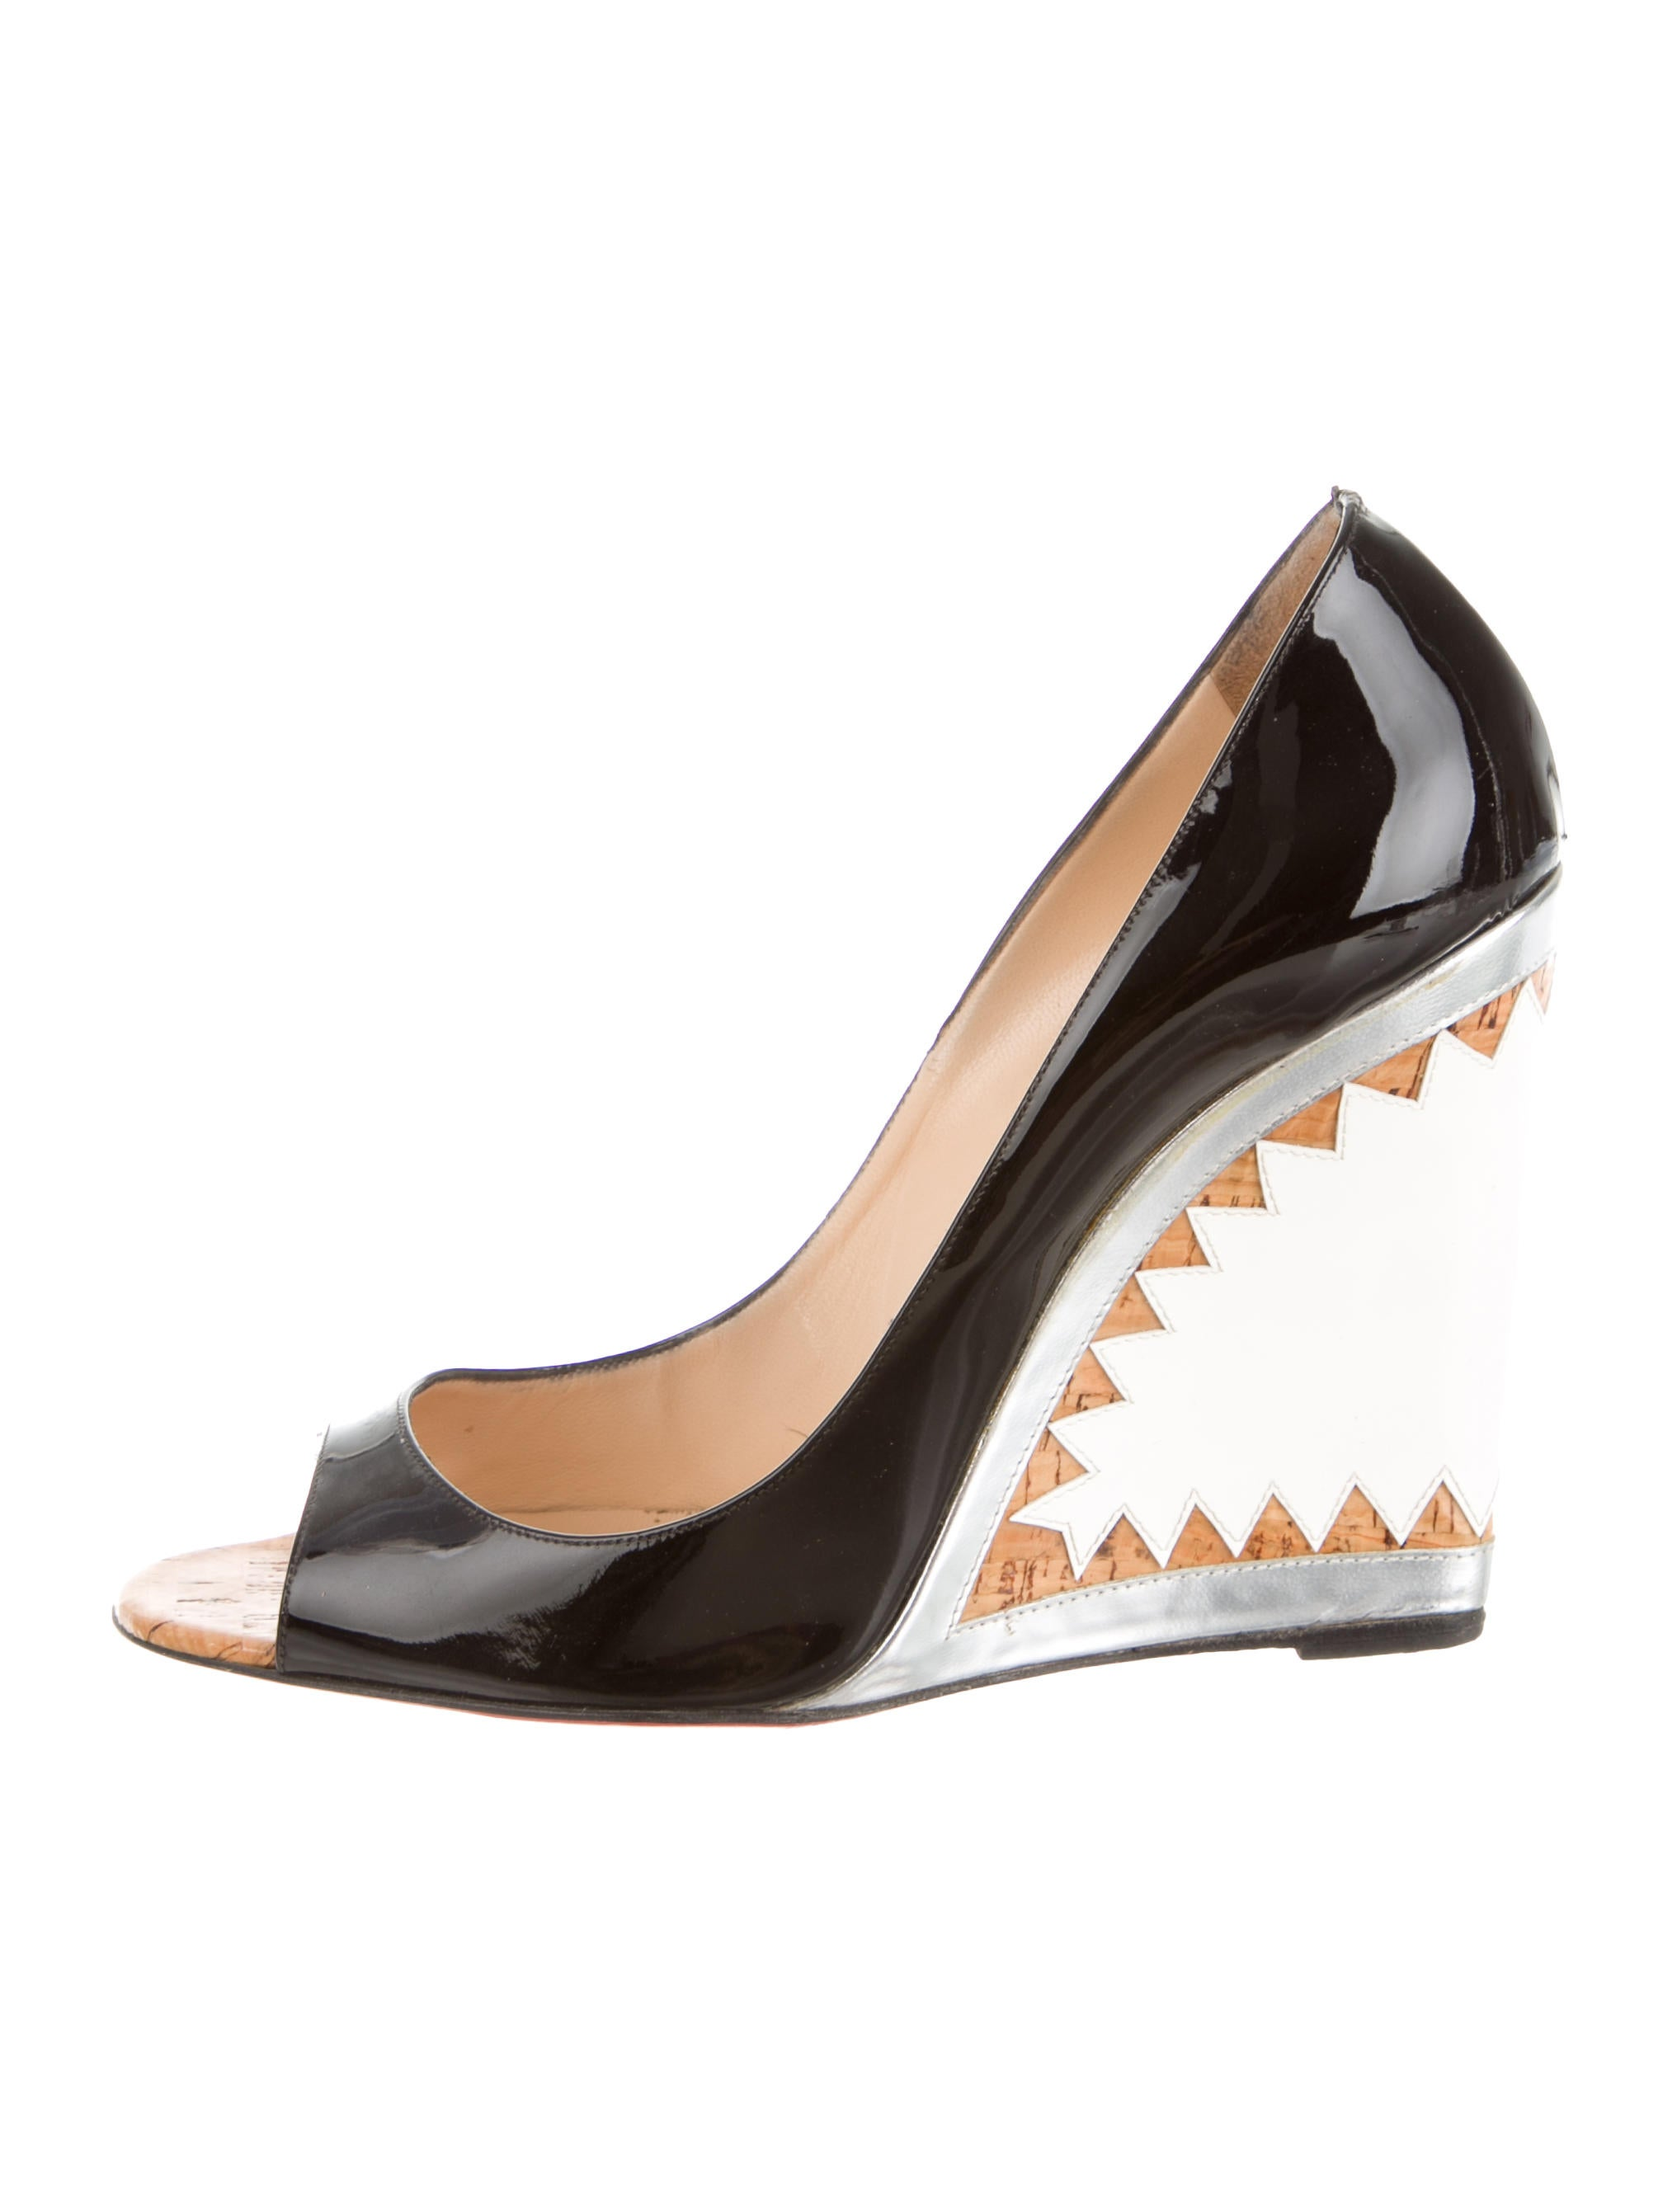 Christian Louboutin Metallic-Trimmed Patent Leather Wedges - Shoes ...